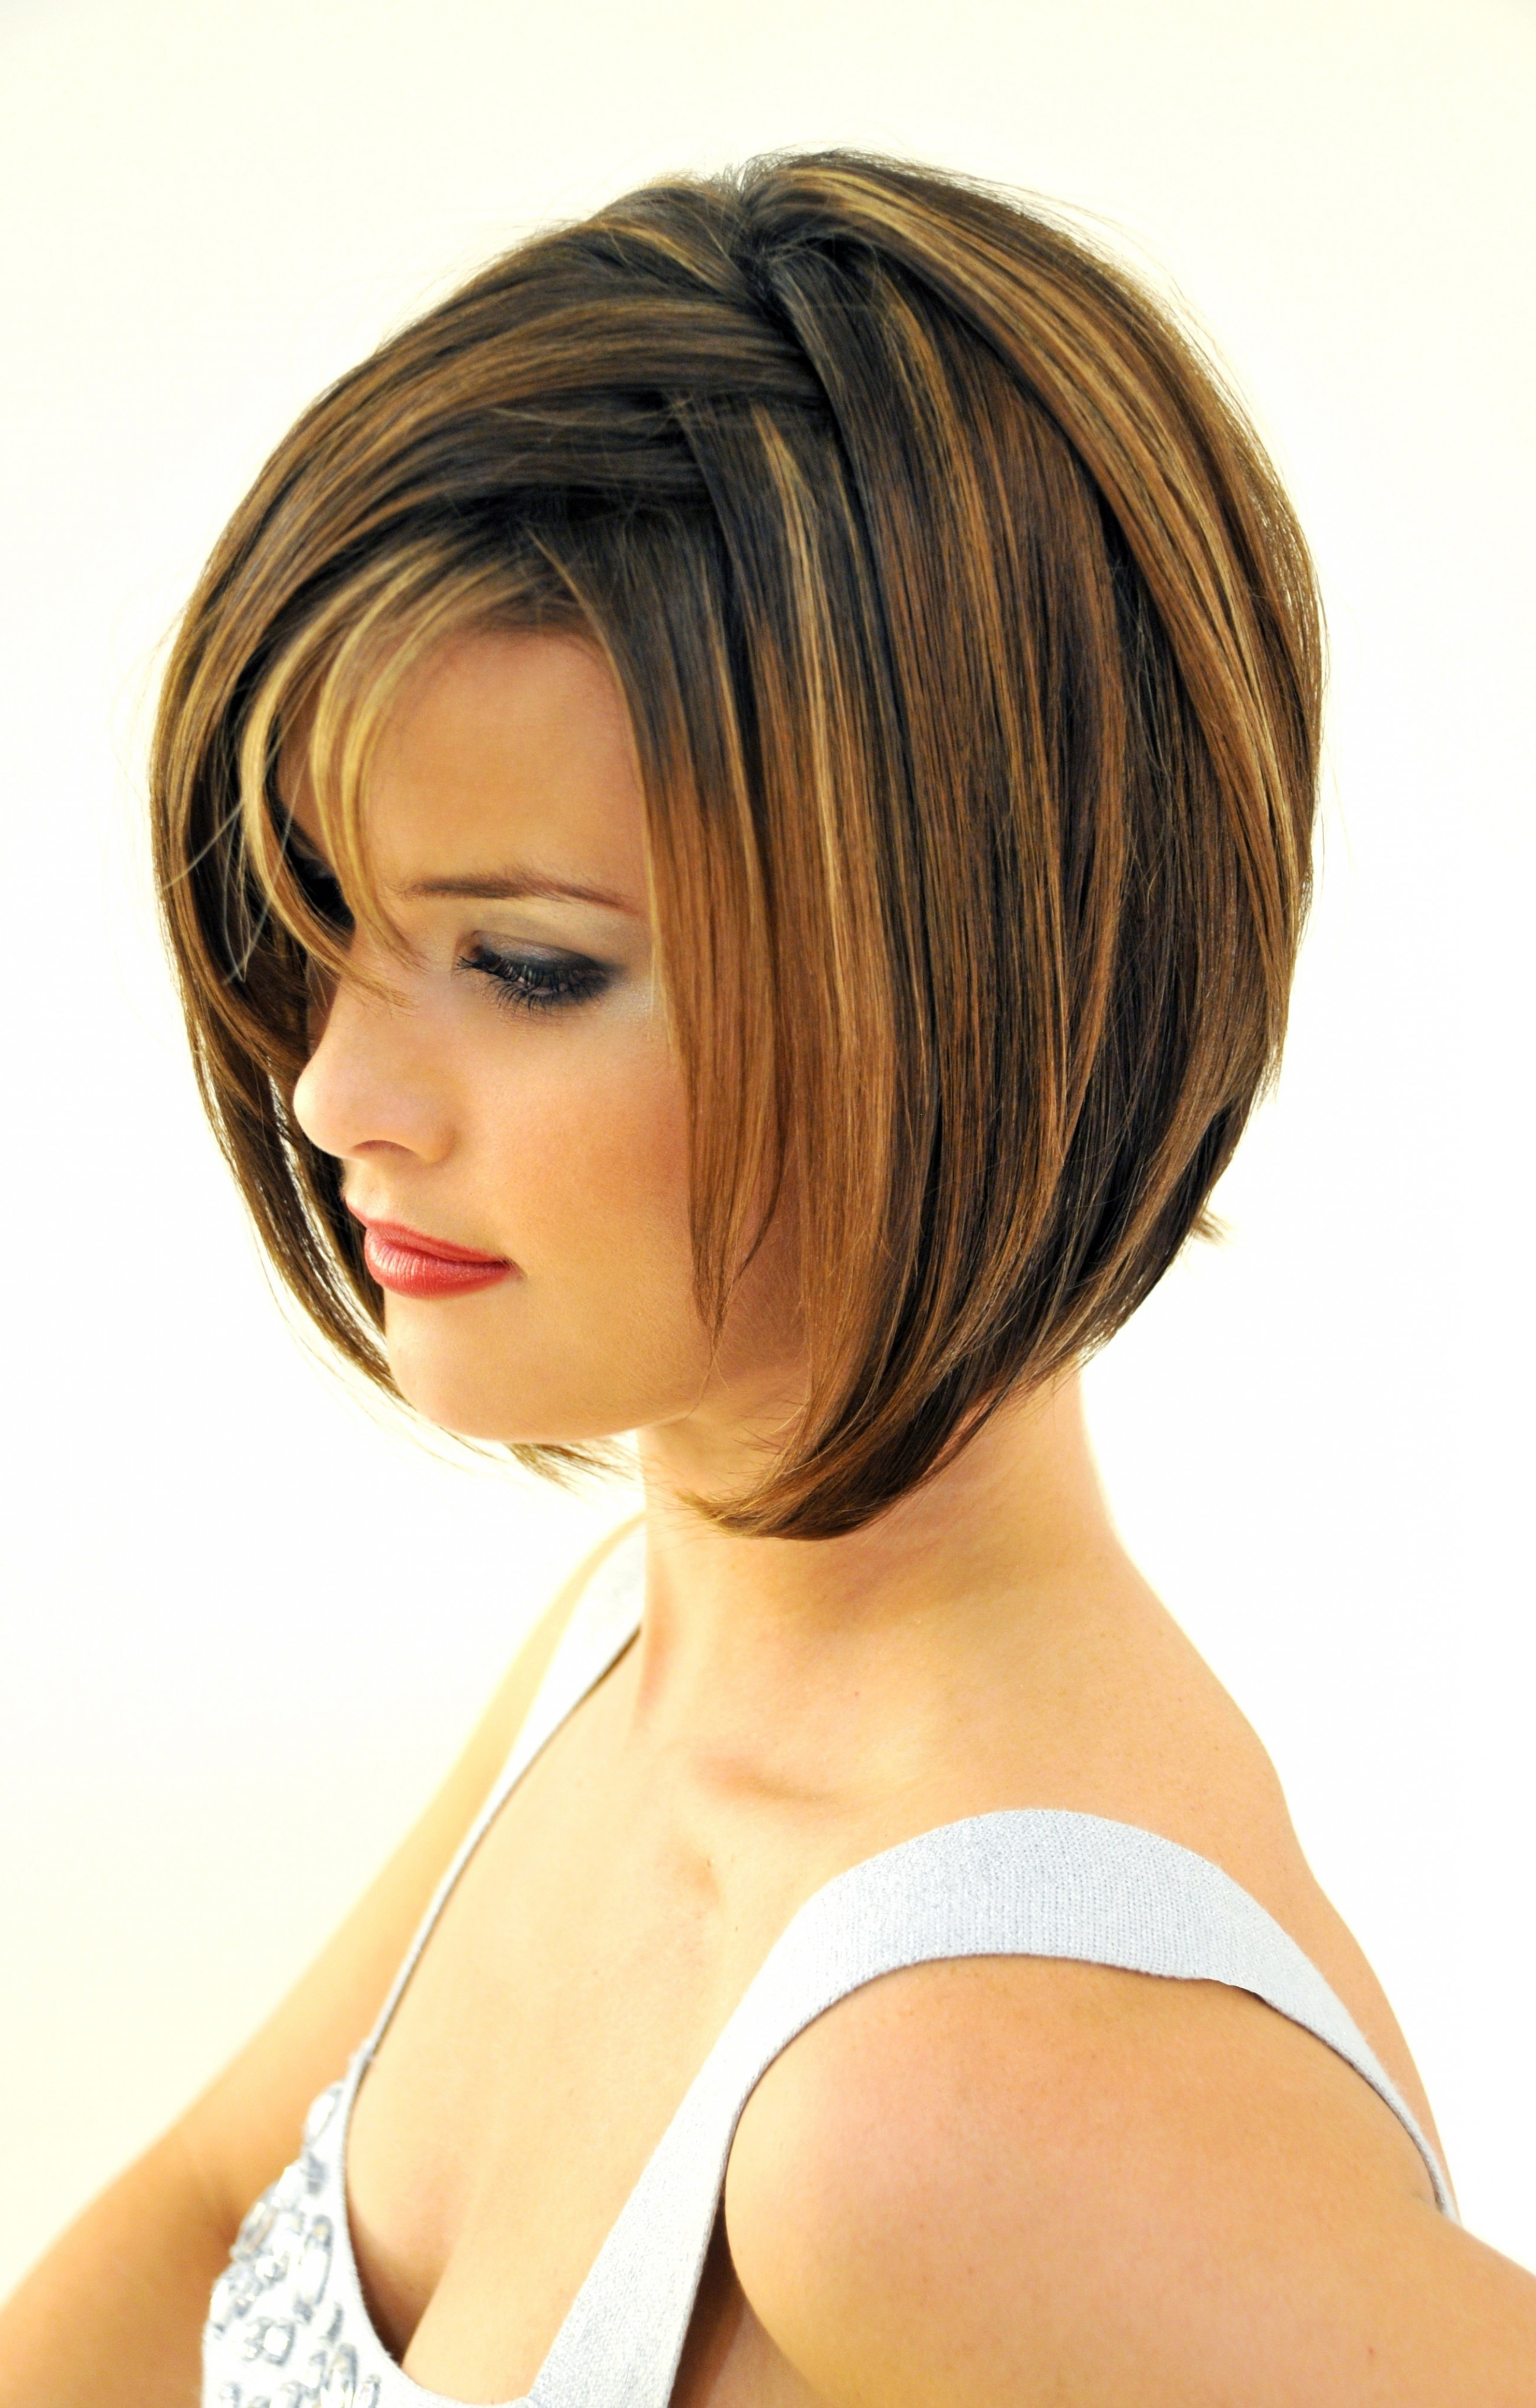 Layered Hair Kids Long Layered Bob Hairstyles For Thick Hair Modern With Regard To Layered Bob Hairstyles For Thick Hair (Gallery 20 of 20)